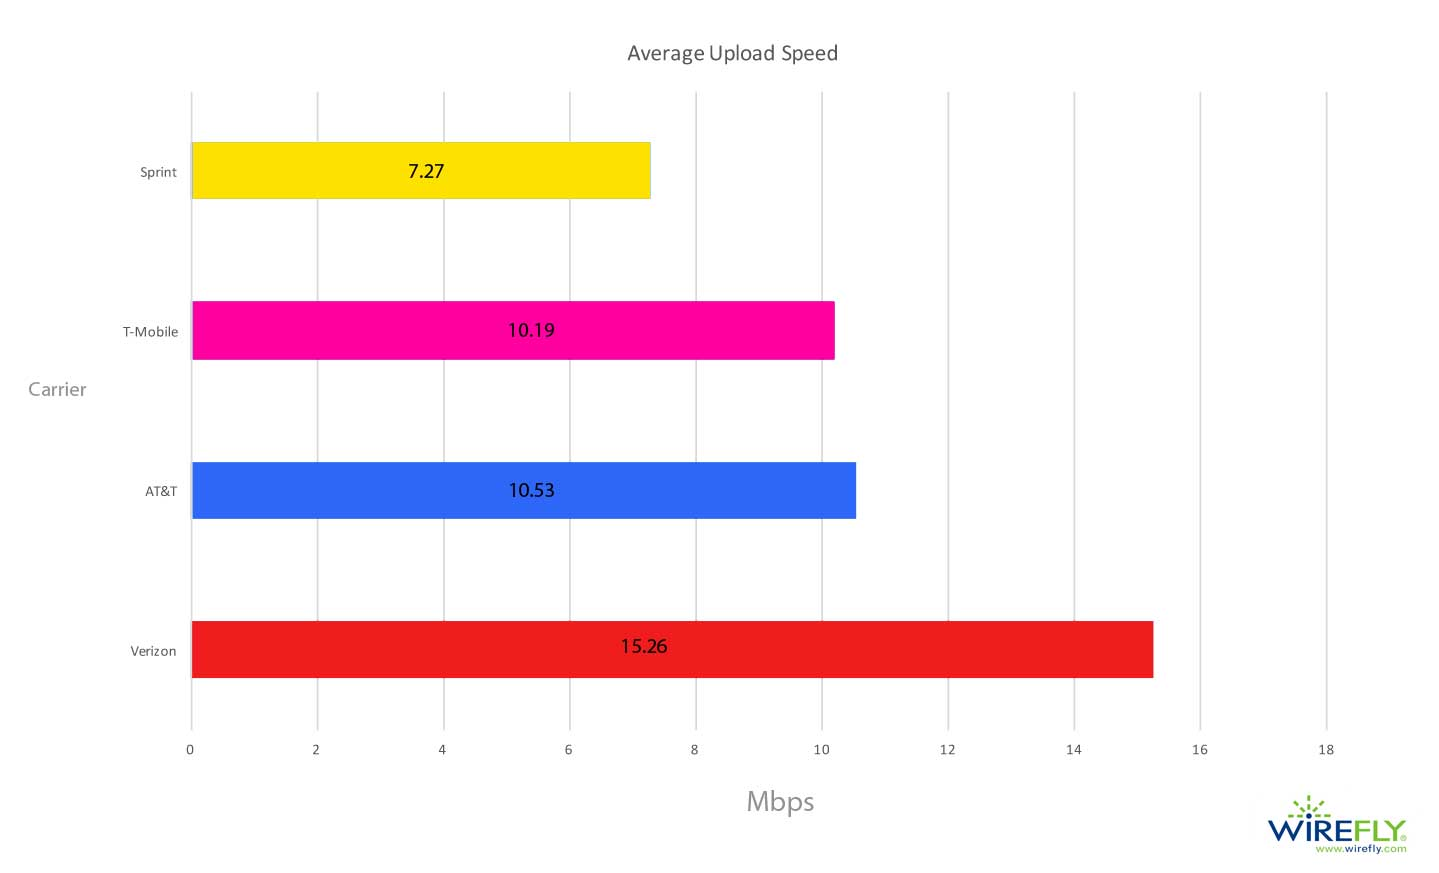 Graph of Average Mobile Carrier Upload Speed in the United States (Q4 2017 - Q1 2018)